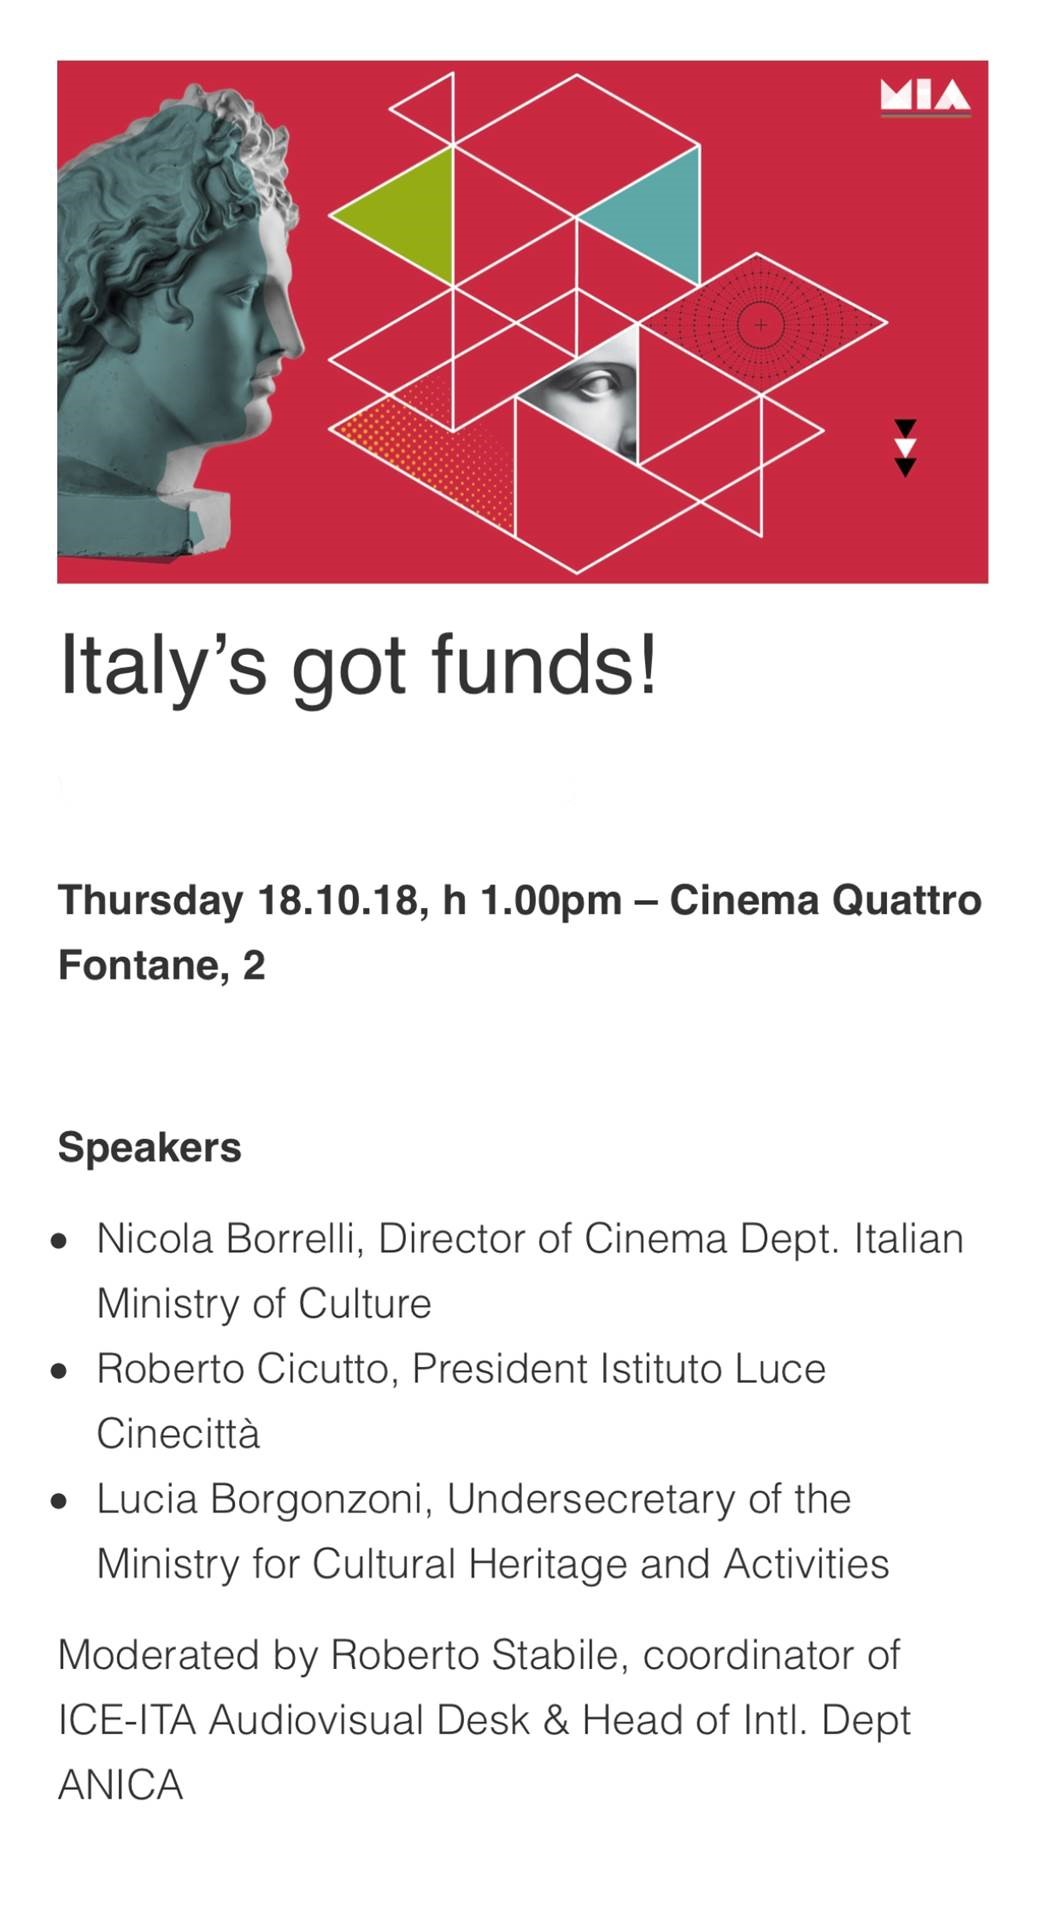 italy_has_got_funds